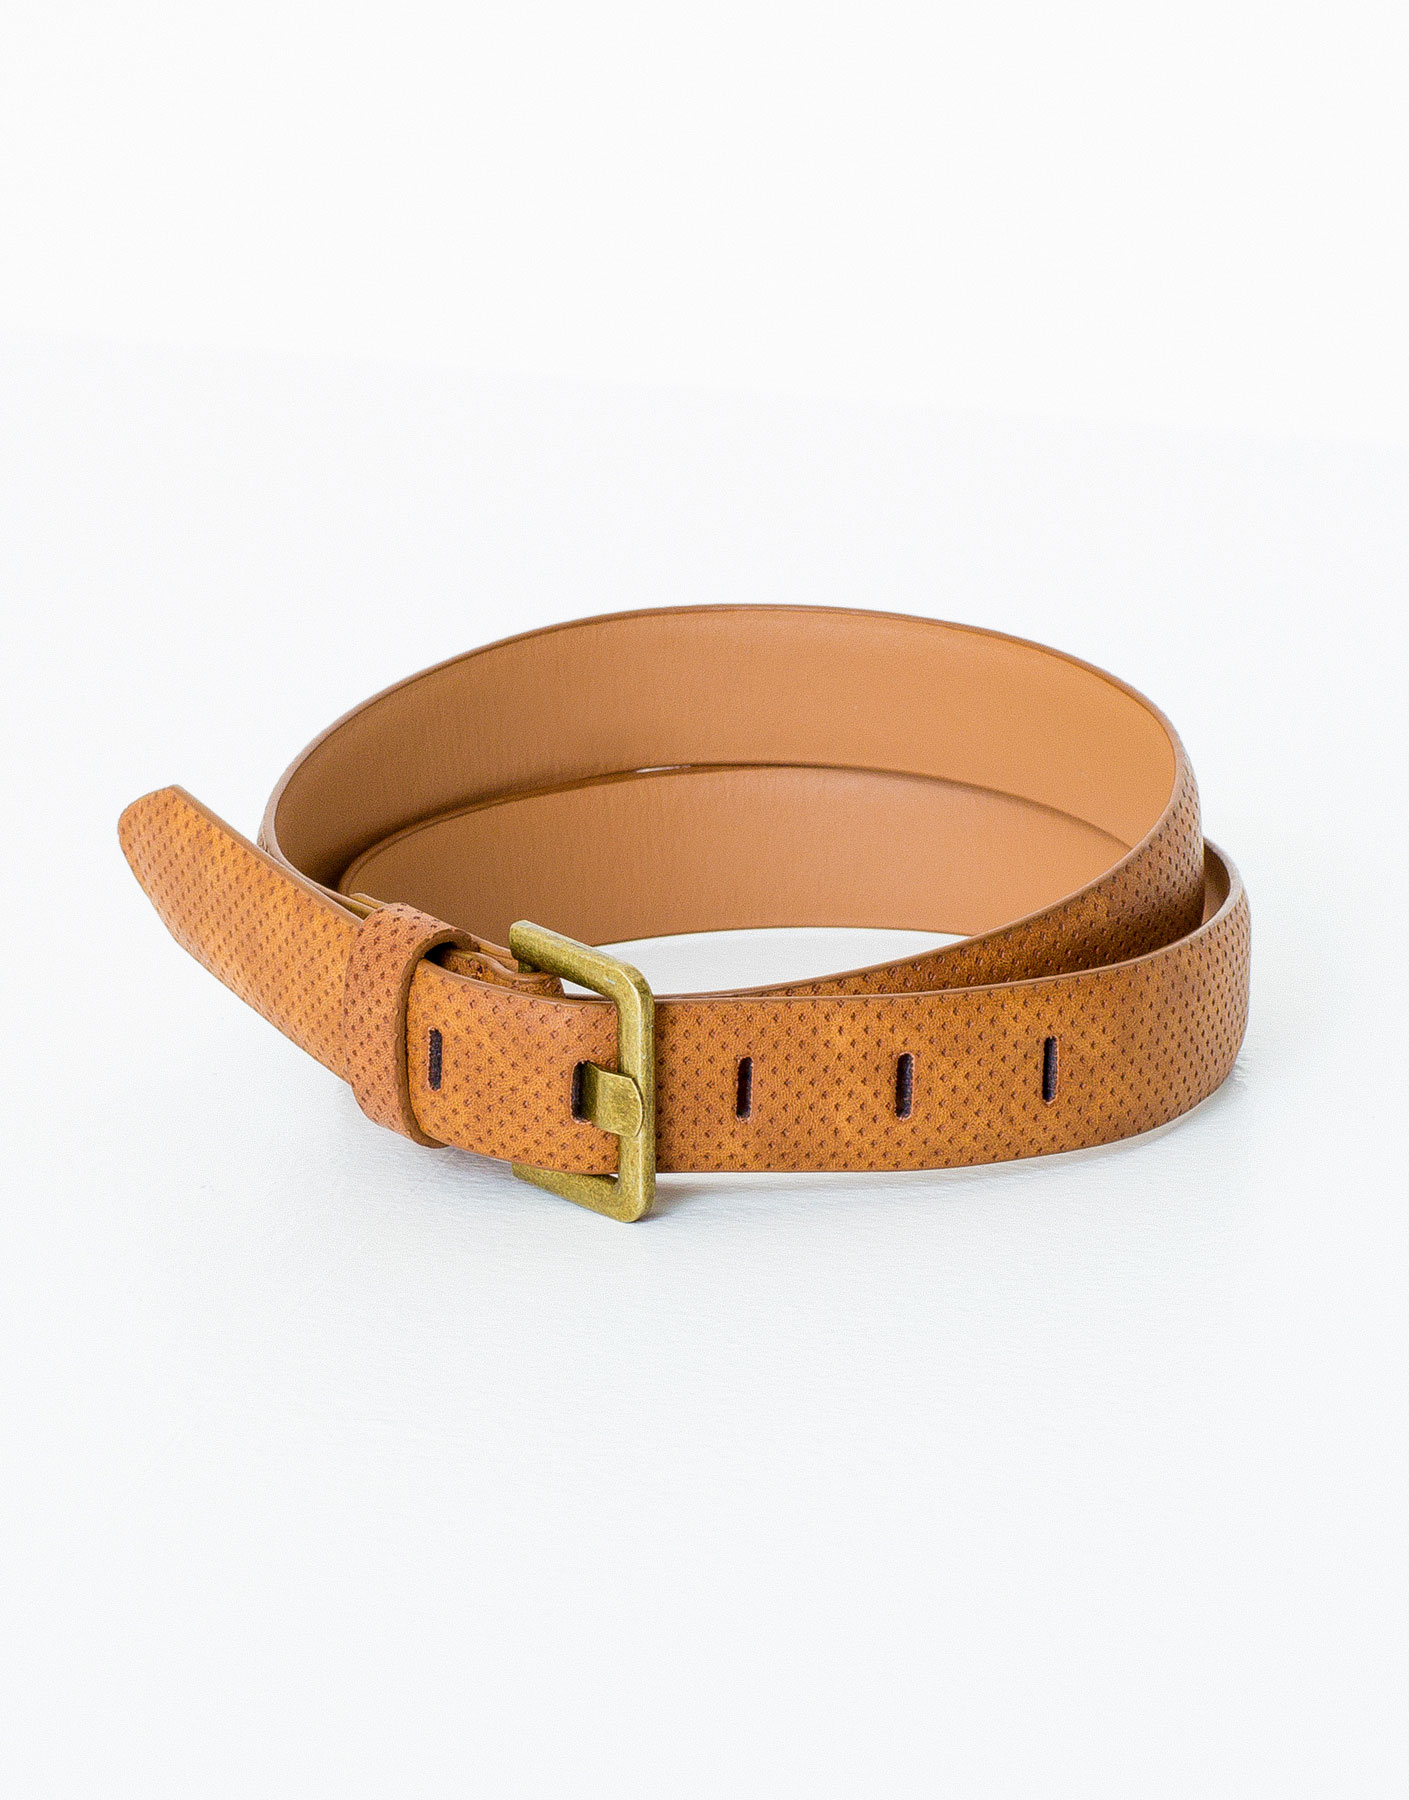 Stitched cutwork belt